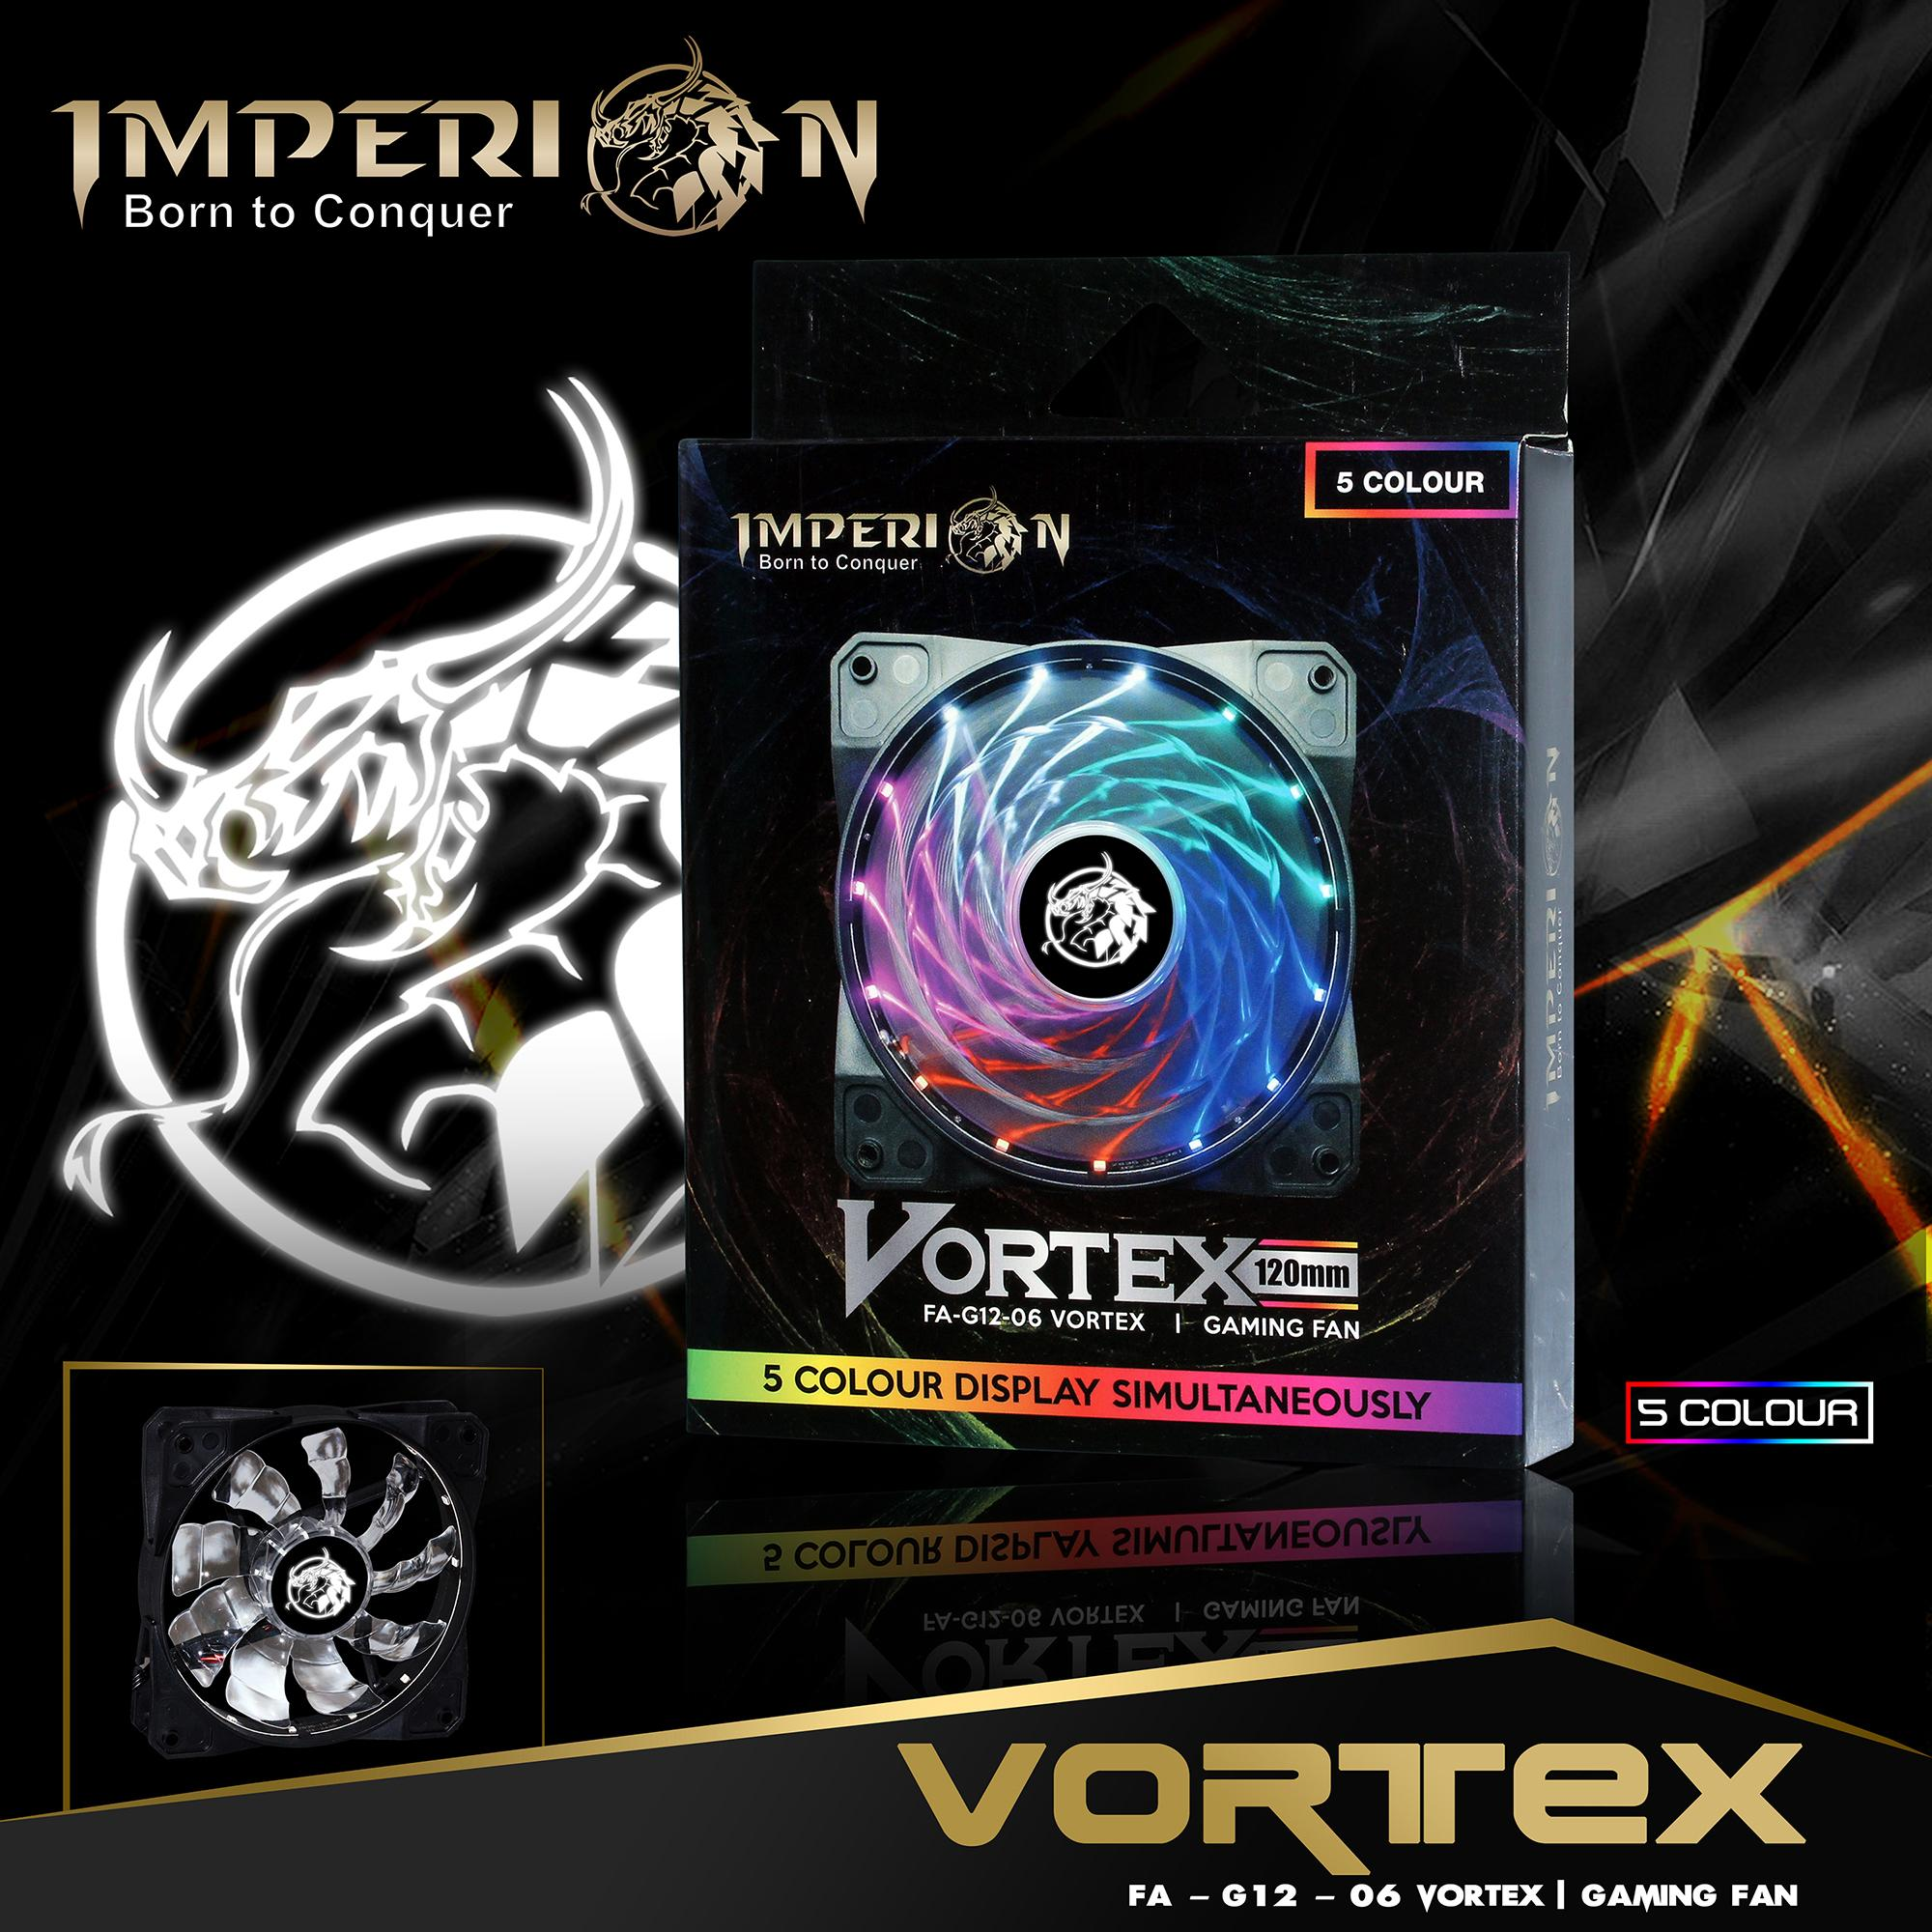 https://www.lazada.co.id/products/fan-case-kipas-gaming-imperion-fa-g12-06-vortex-120mm-5-colour-rgb-i446698009-s529528941.html